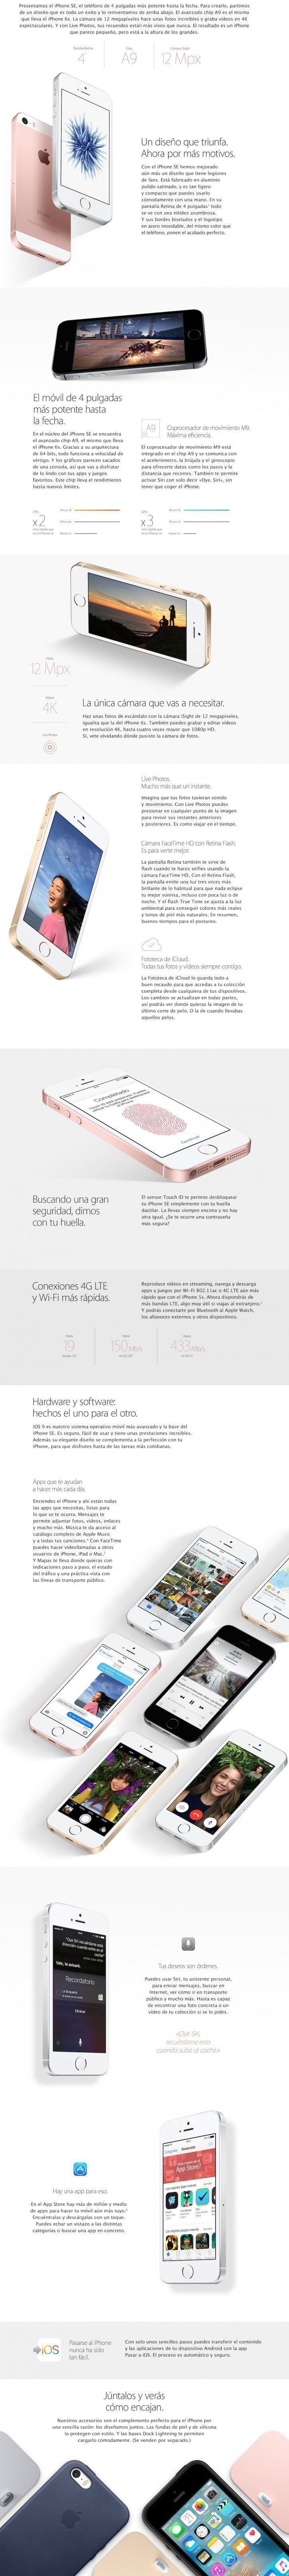 ESES_iPhone_SE_Q316_Web_Product_Page_02